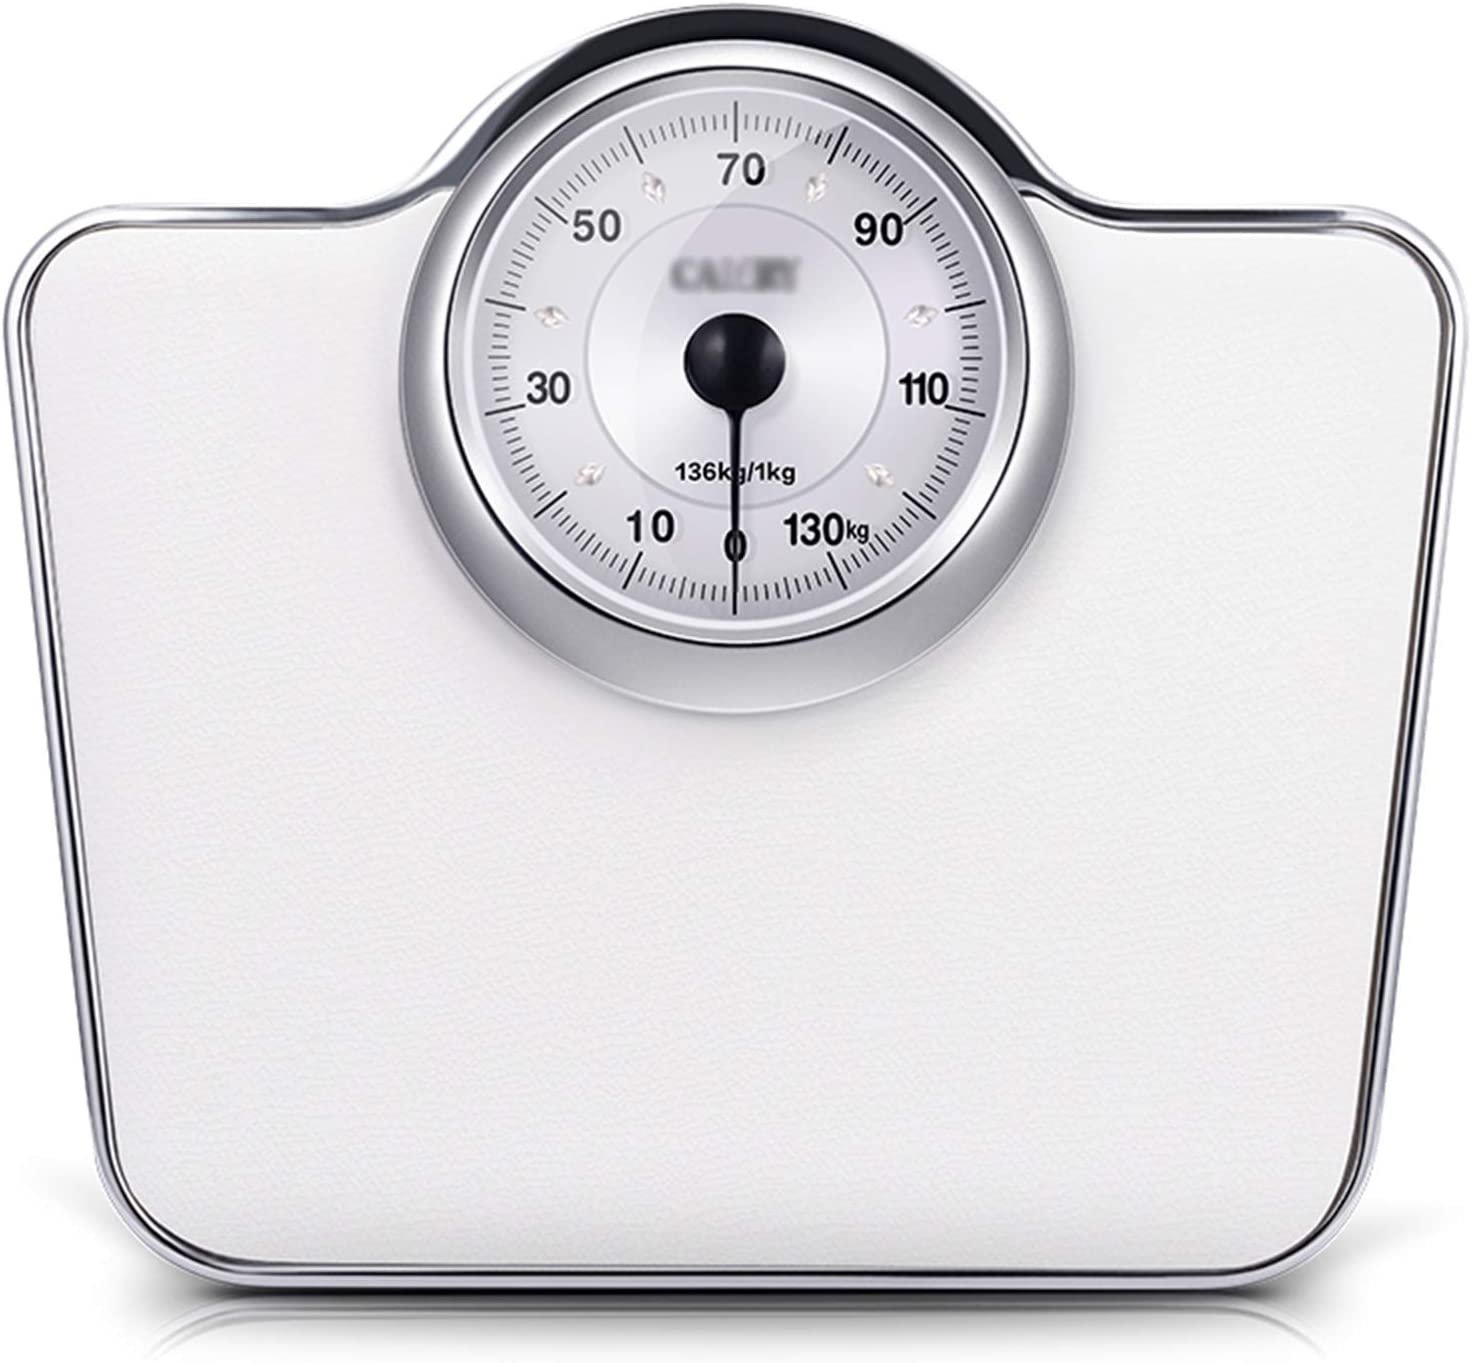 FACC Bathroom Scale Analog White Body Lowest Super Special SALE held price challenge for Mechanical Weig